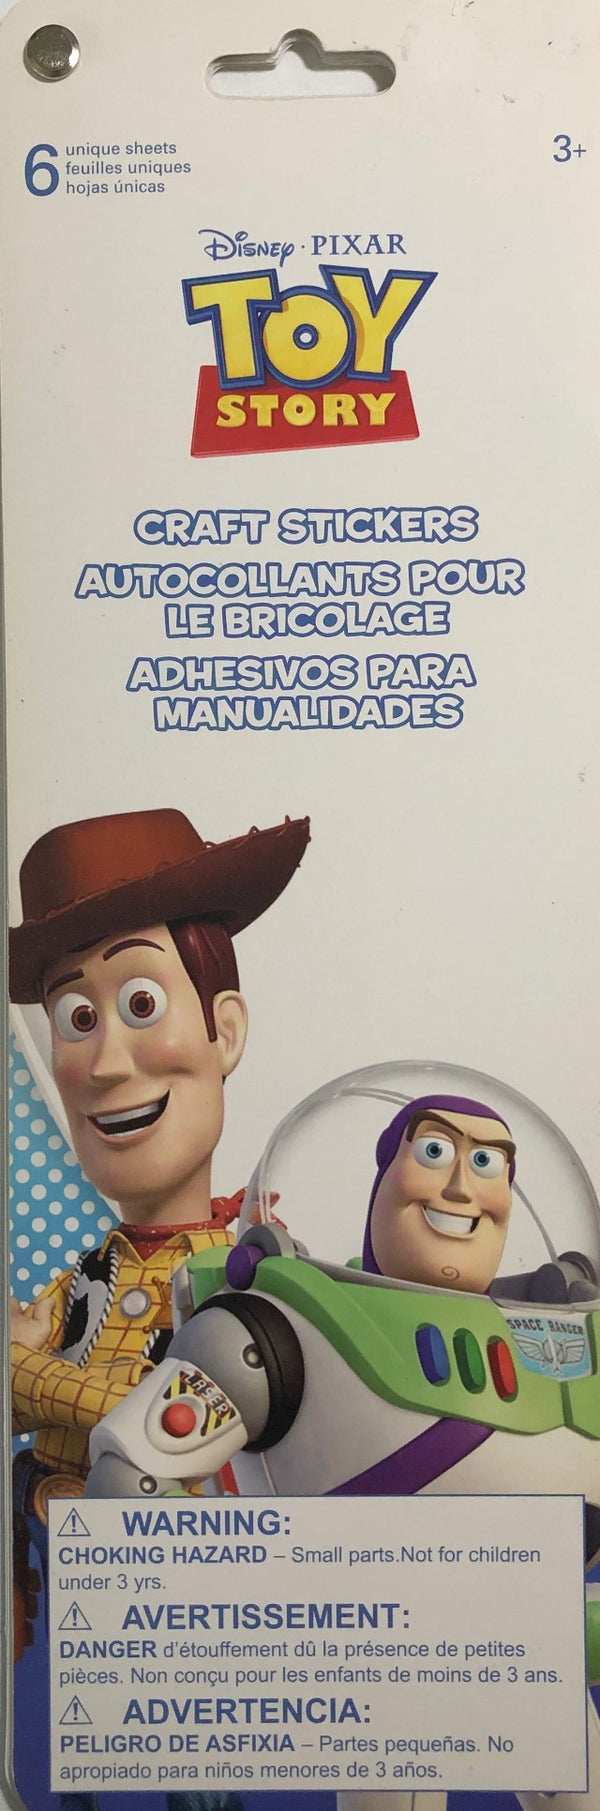 SandyLion Disney Pixar Toy Story Sticker Flip Book - 6 pages